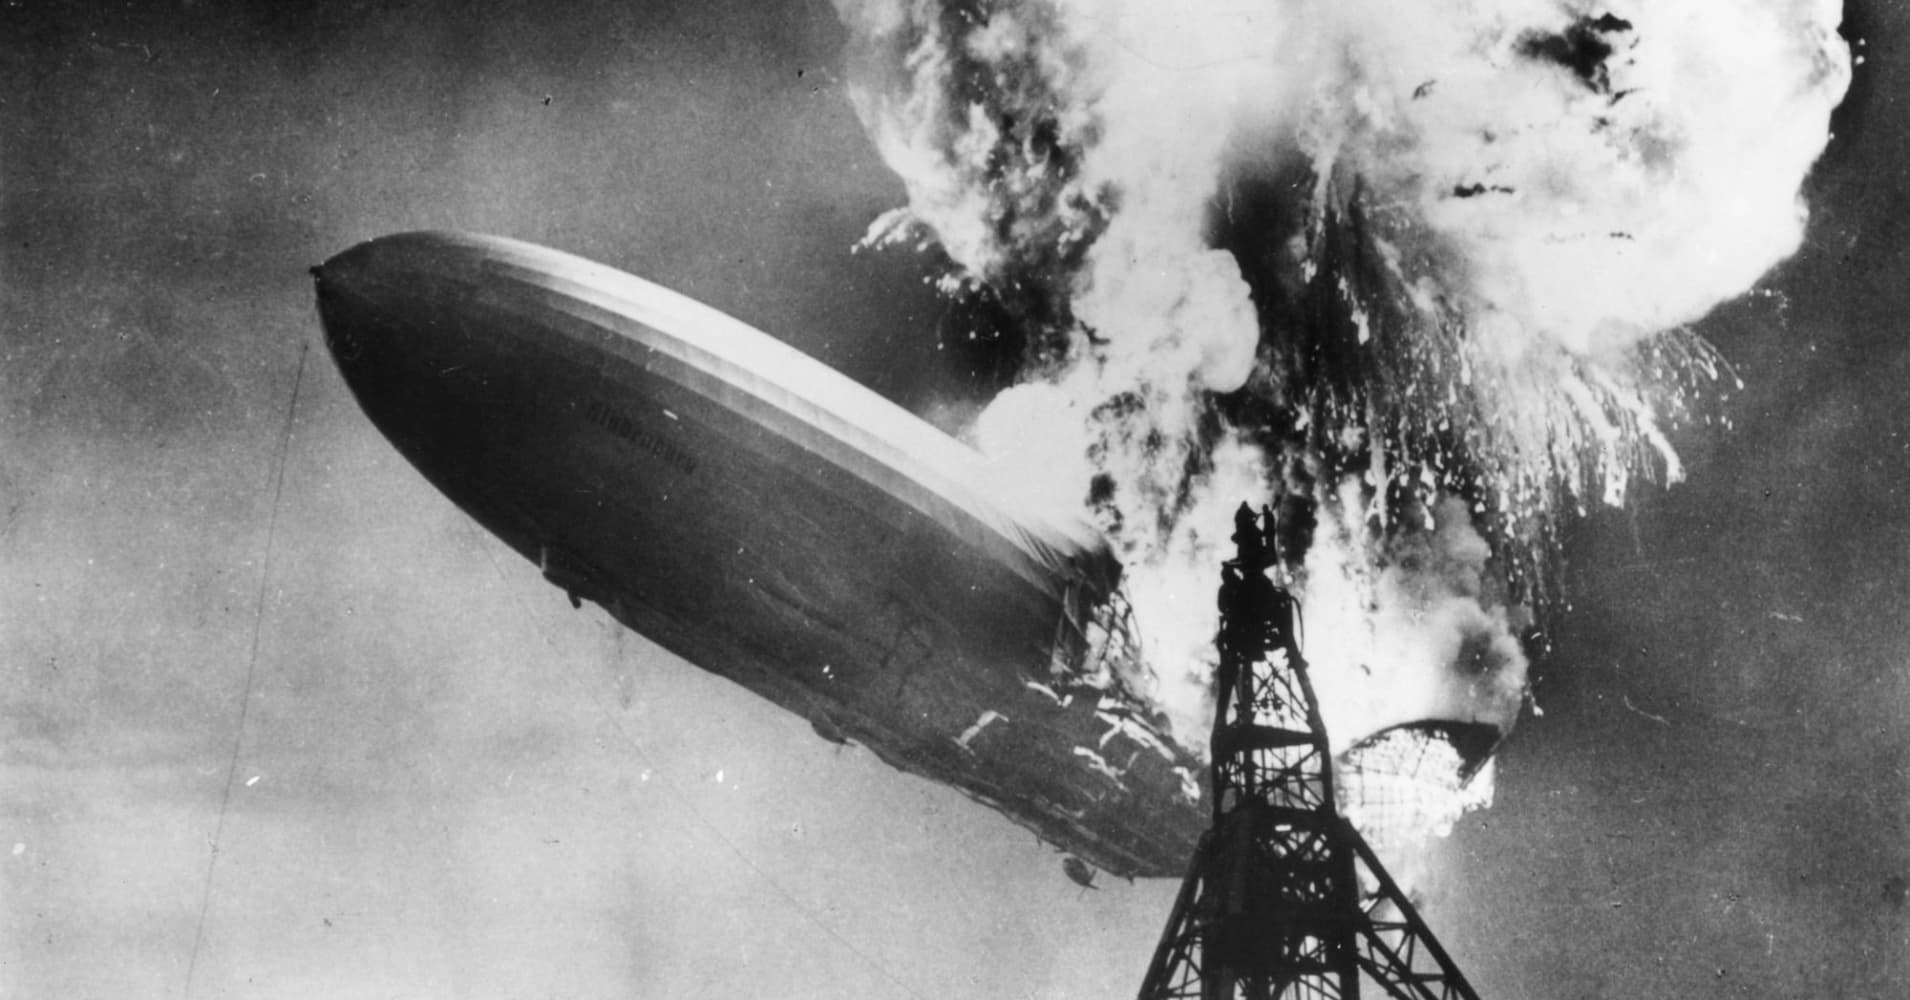 The Hindenburg omen — a questionable crash indicator still riding 1987 fame — has been triggered